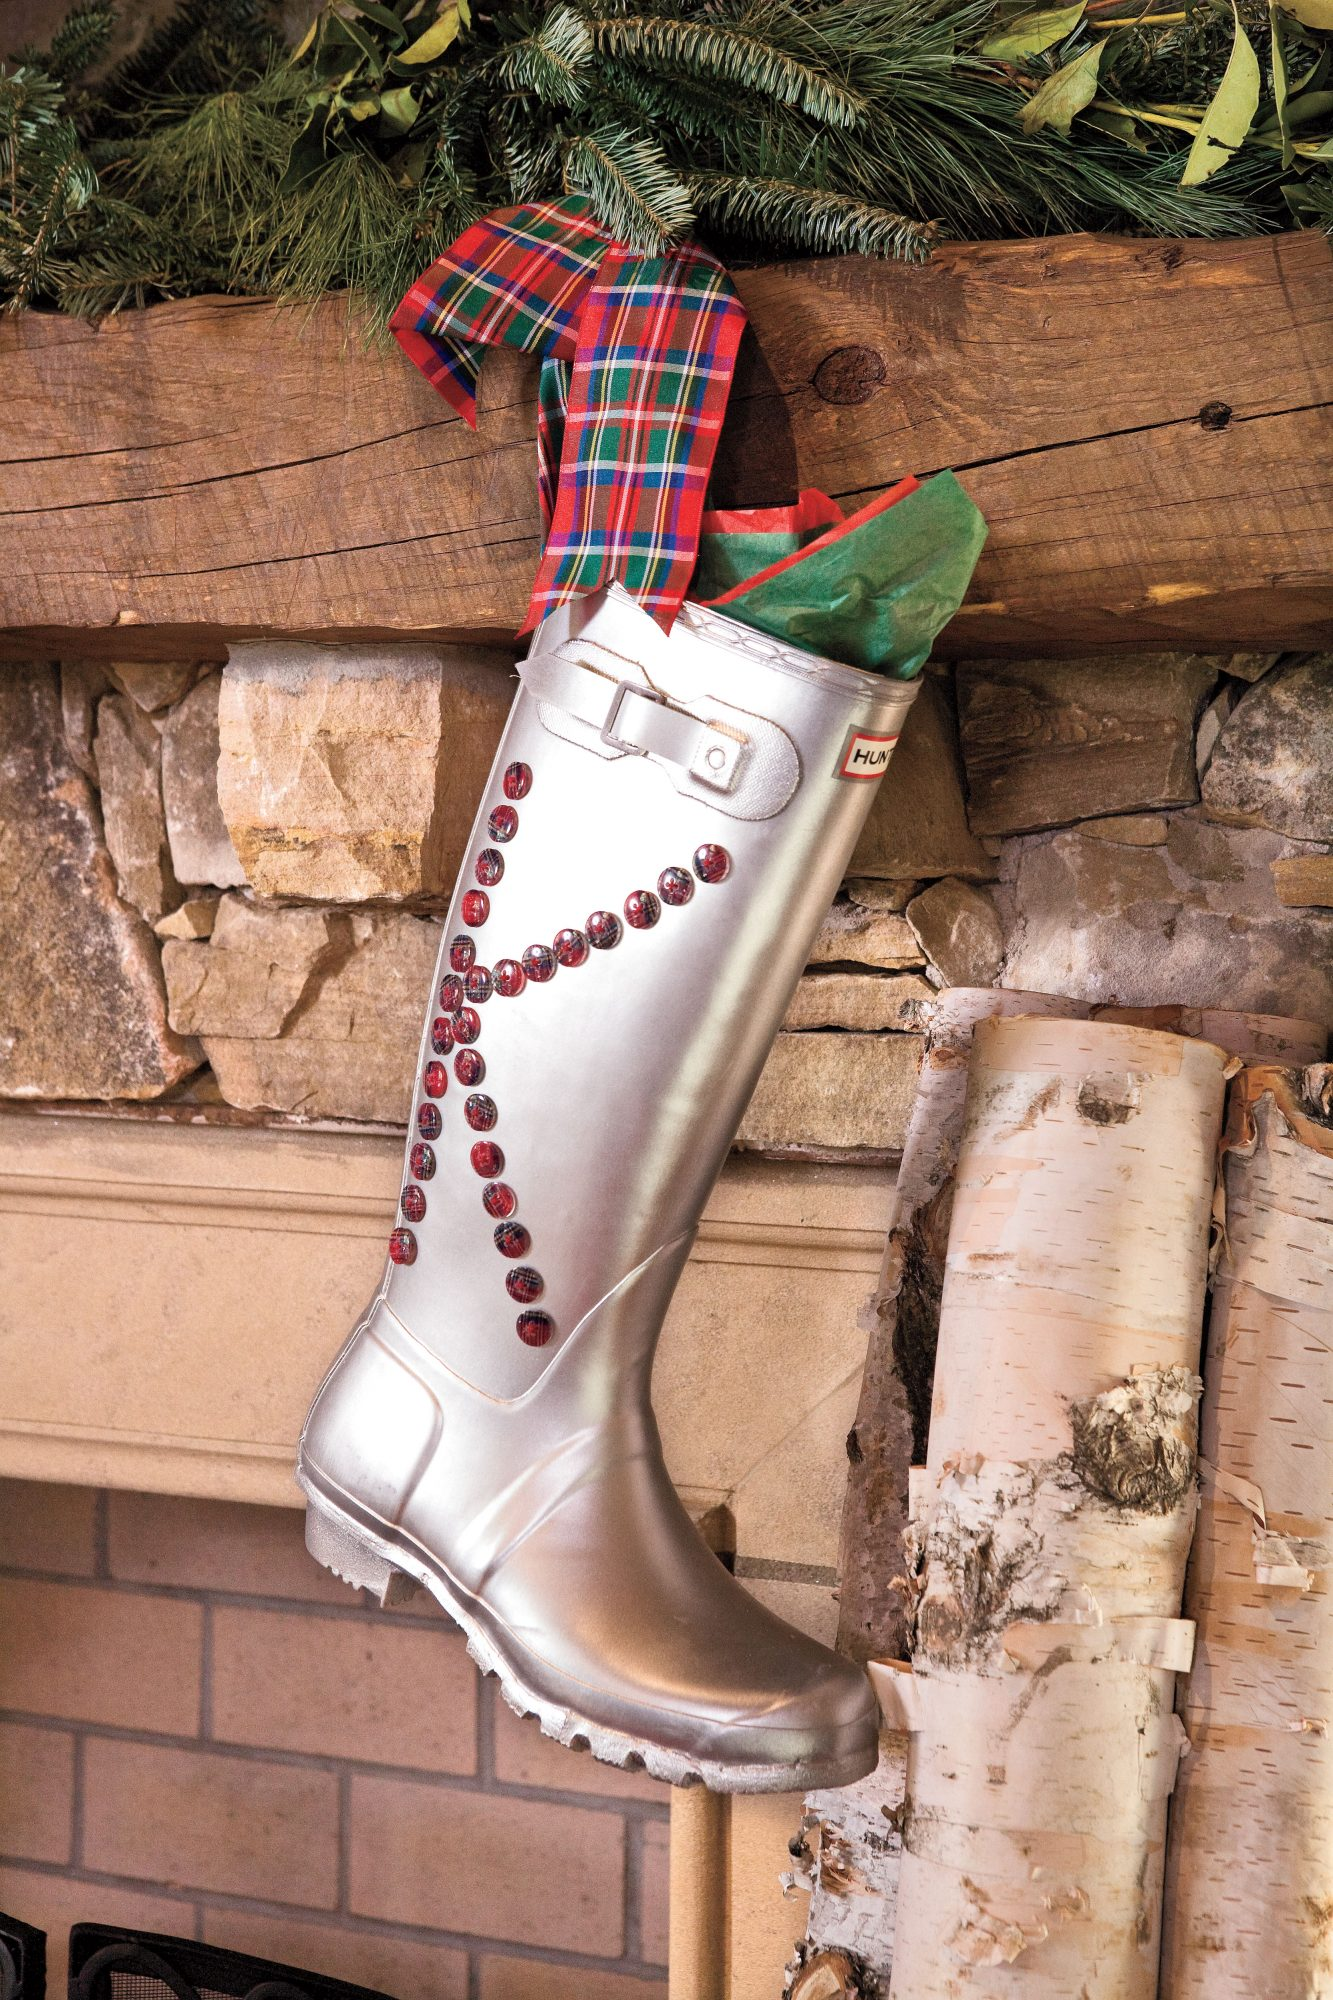 Rubber Boot Stockings